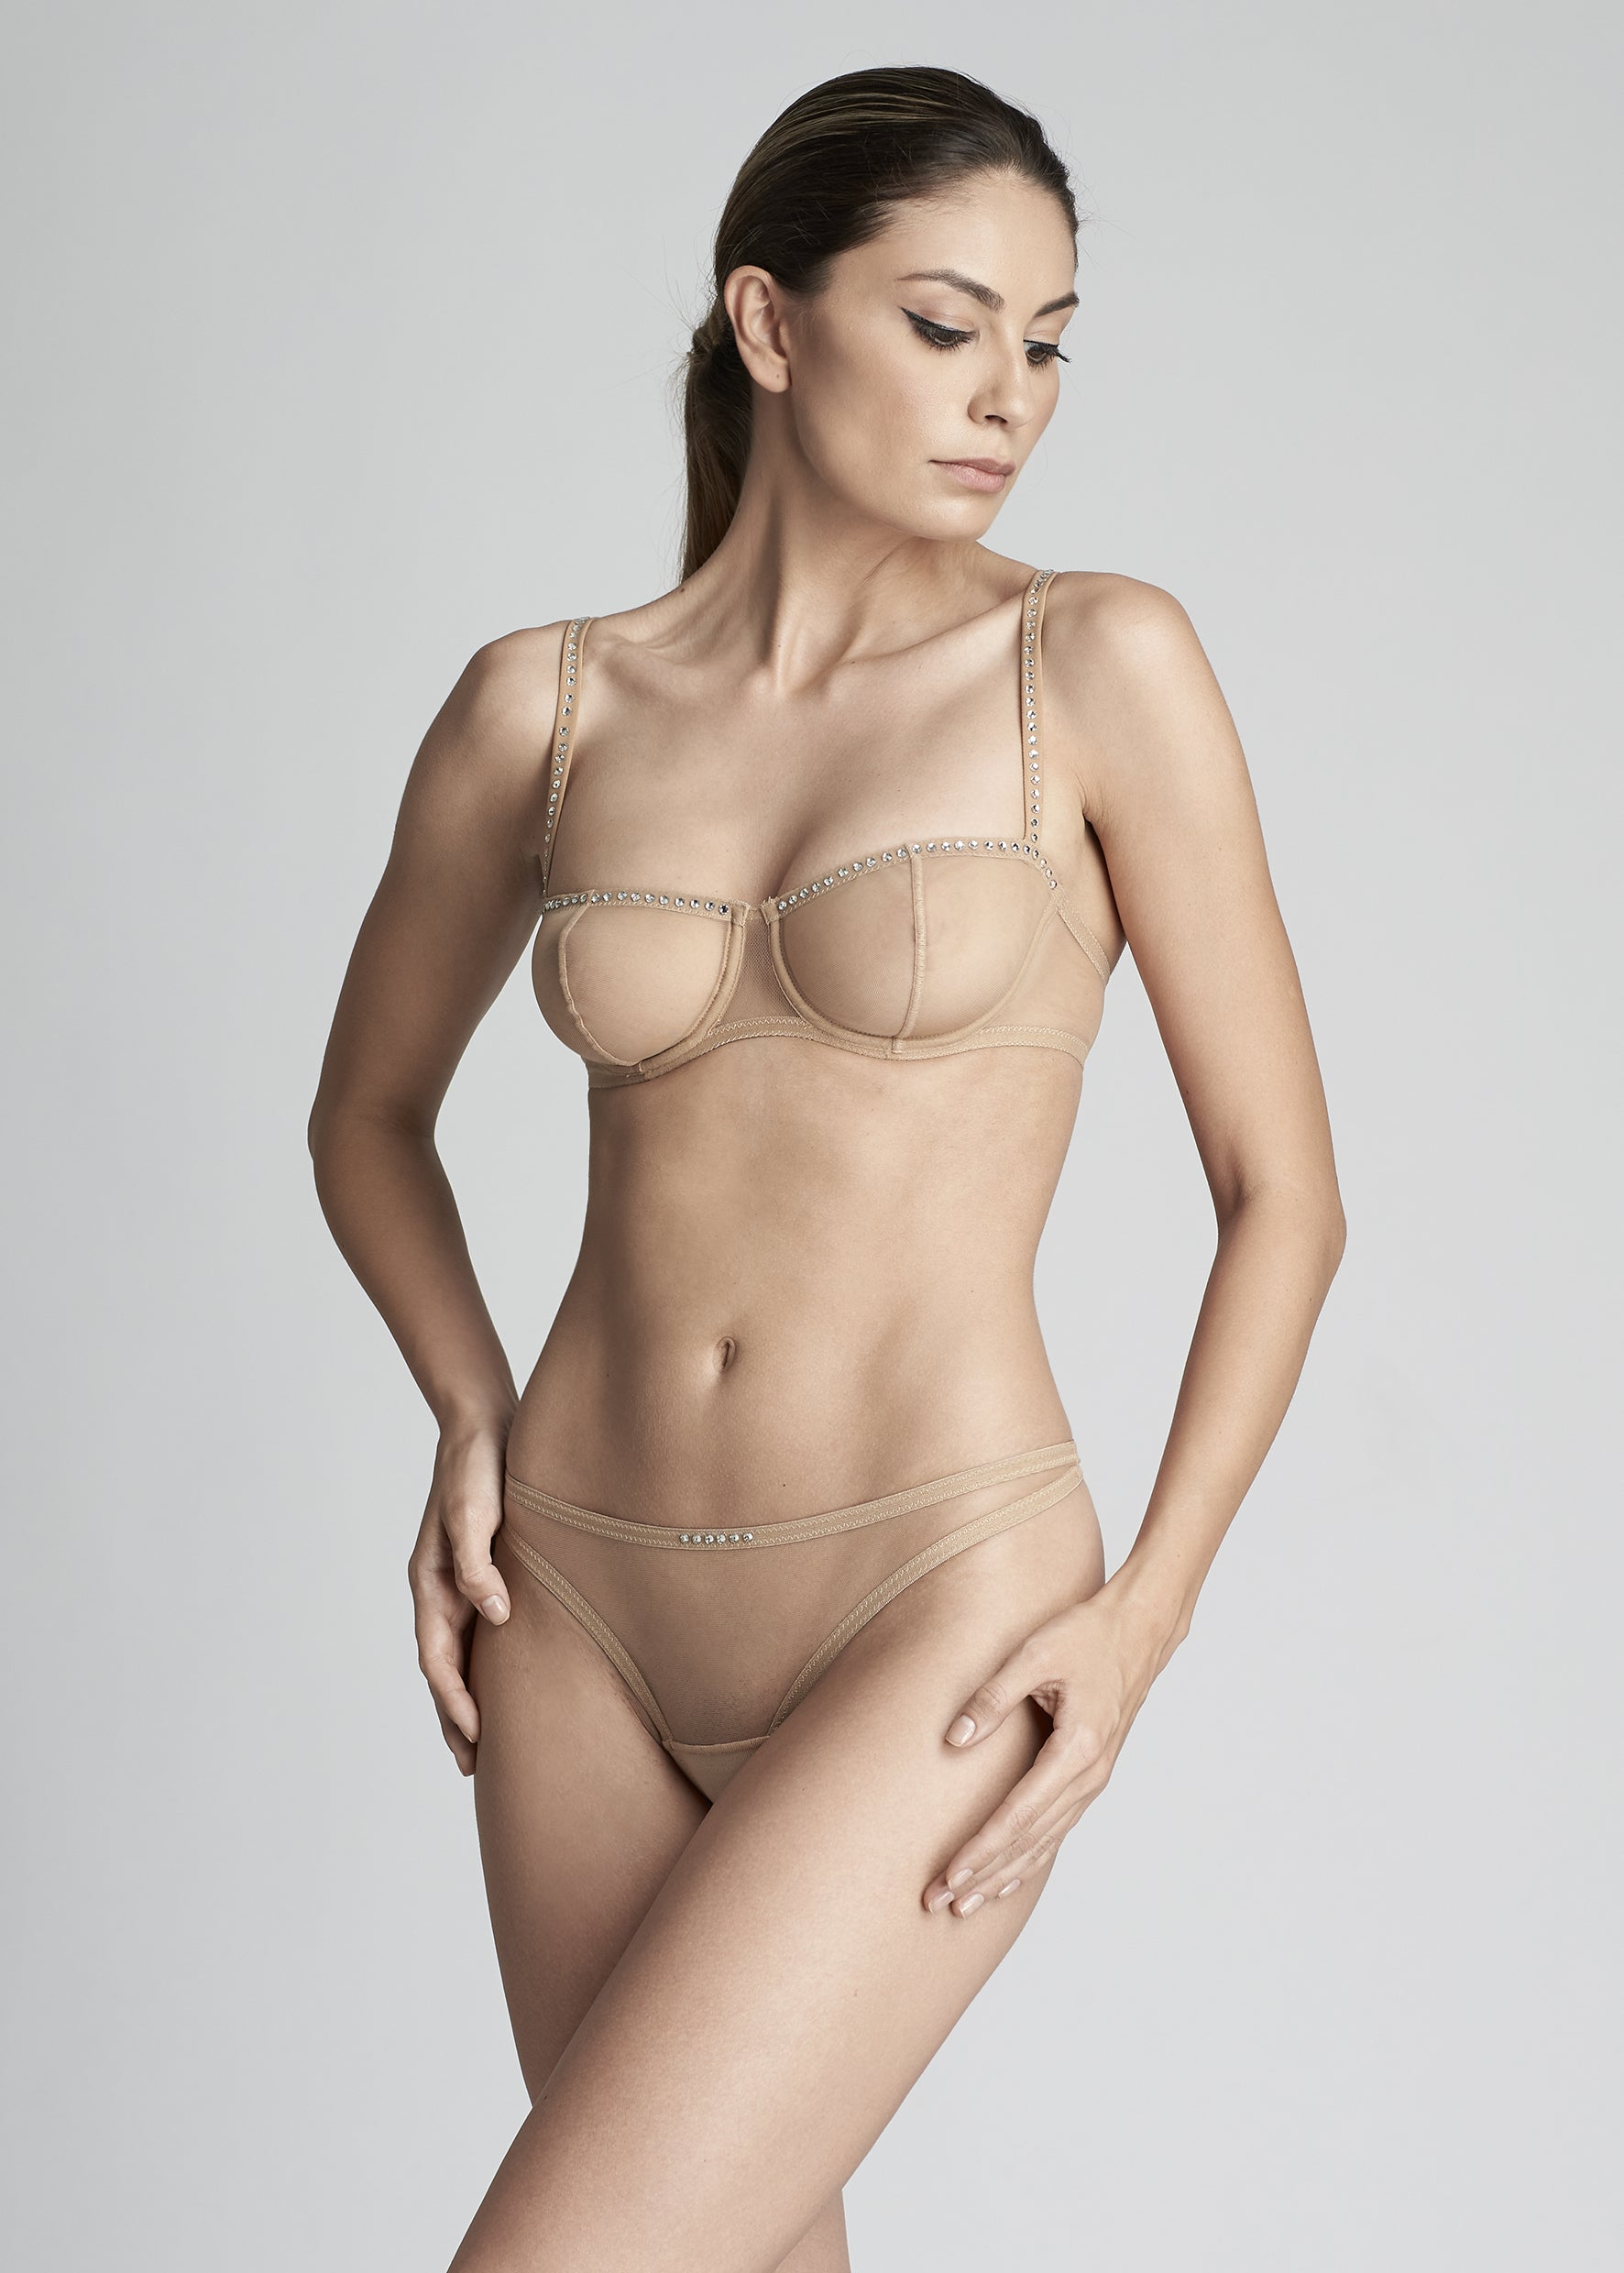 I.D. Sarrieri Balconette Bra with Swarovski Crystals in Nude